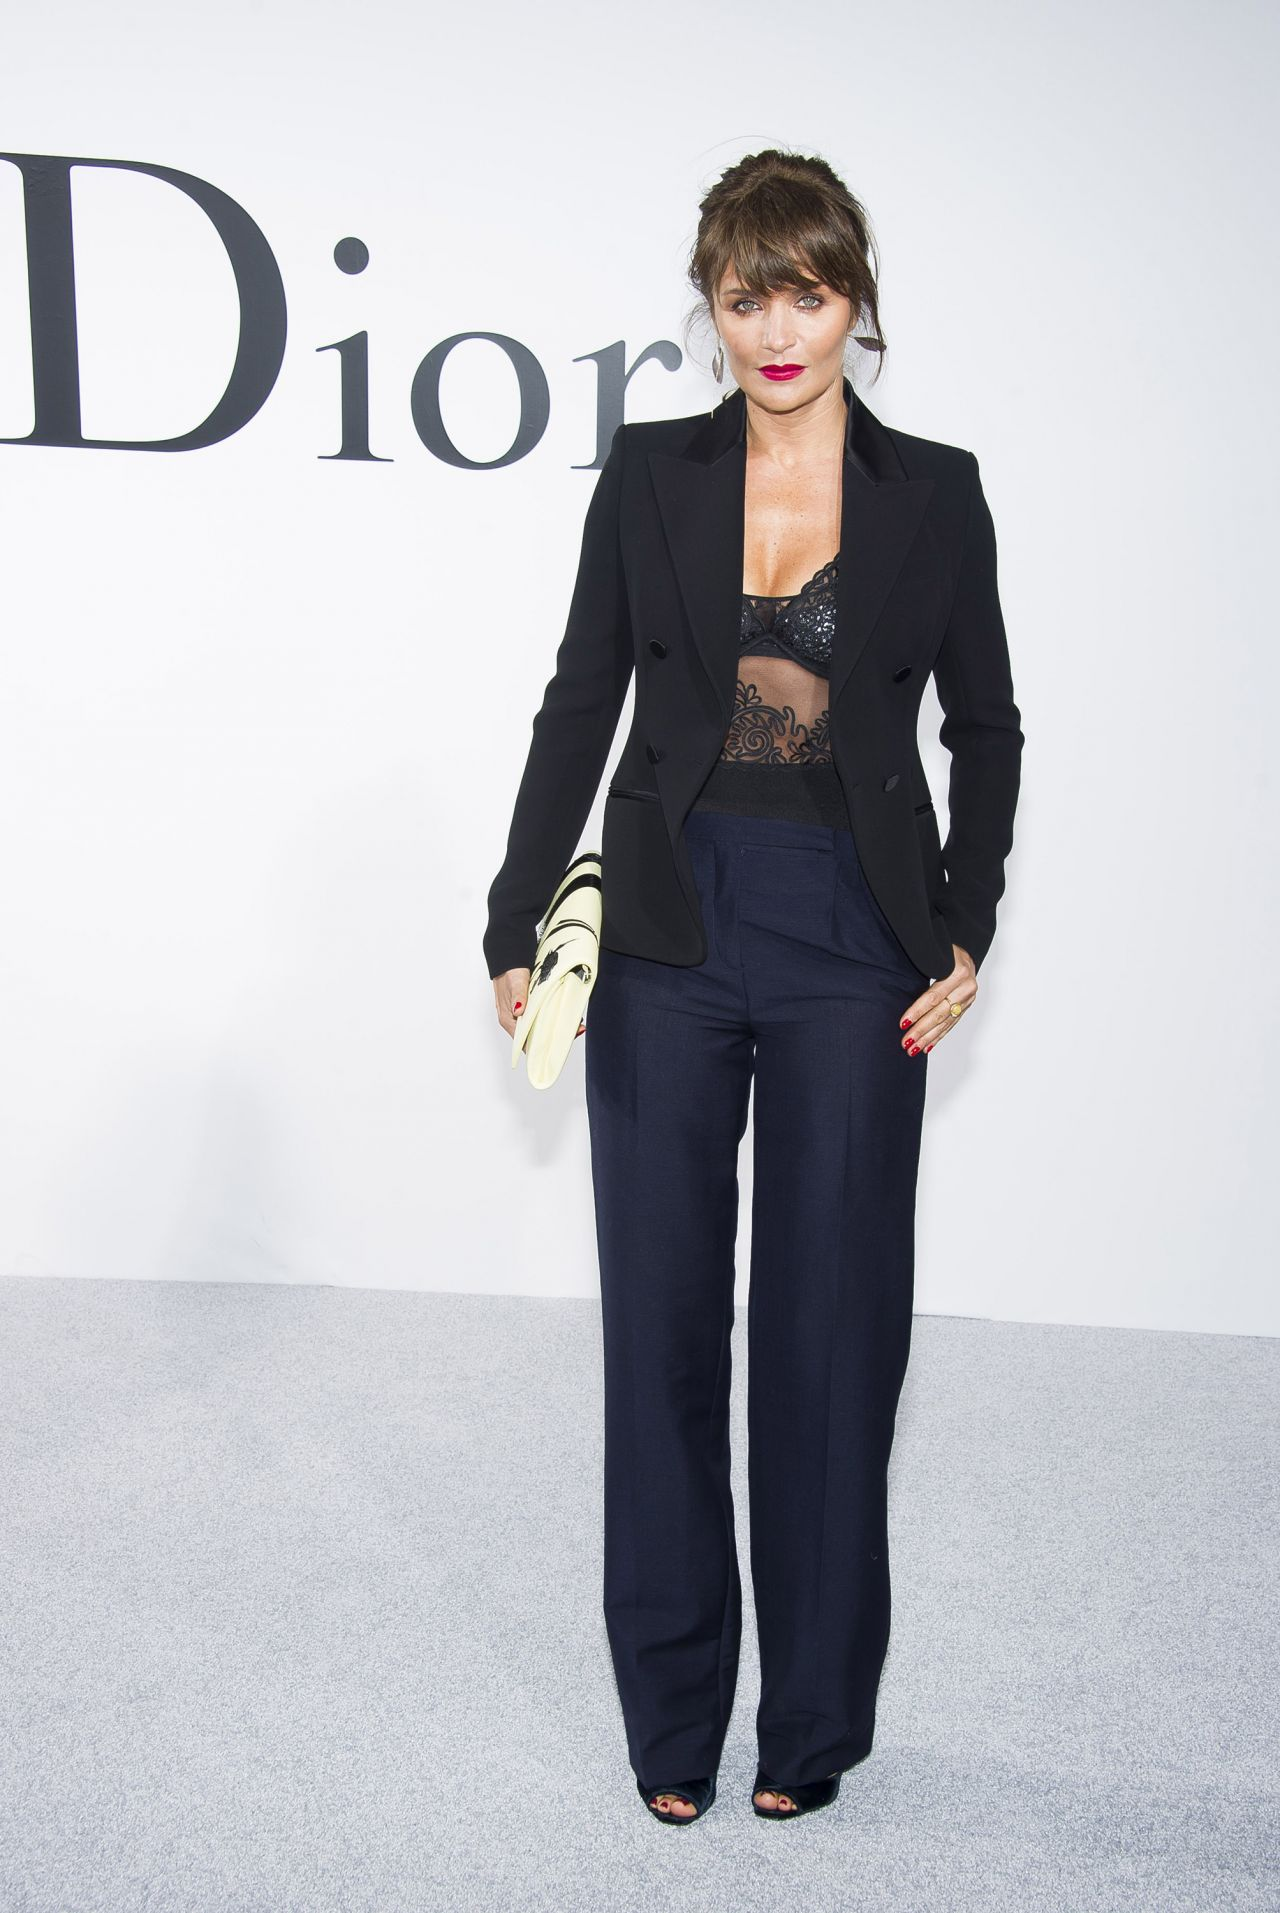 Helena Christensen - Dior Cruise 2015 Fashion Show - May 2014